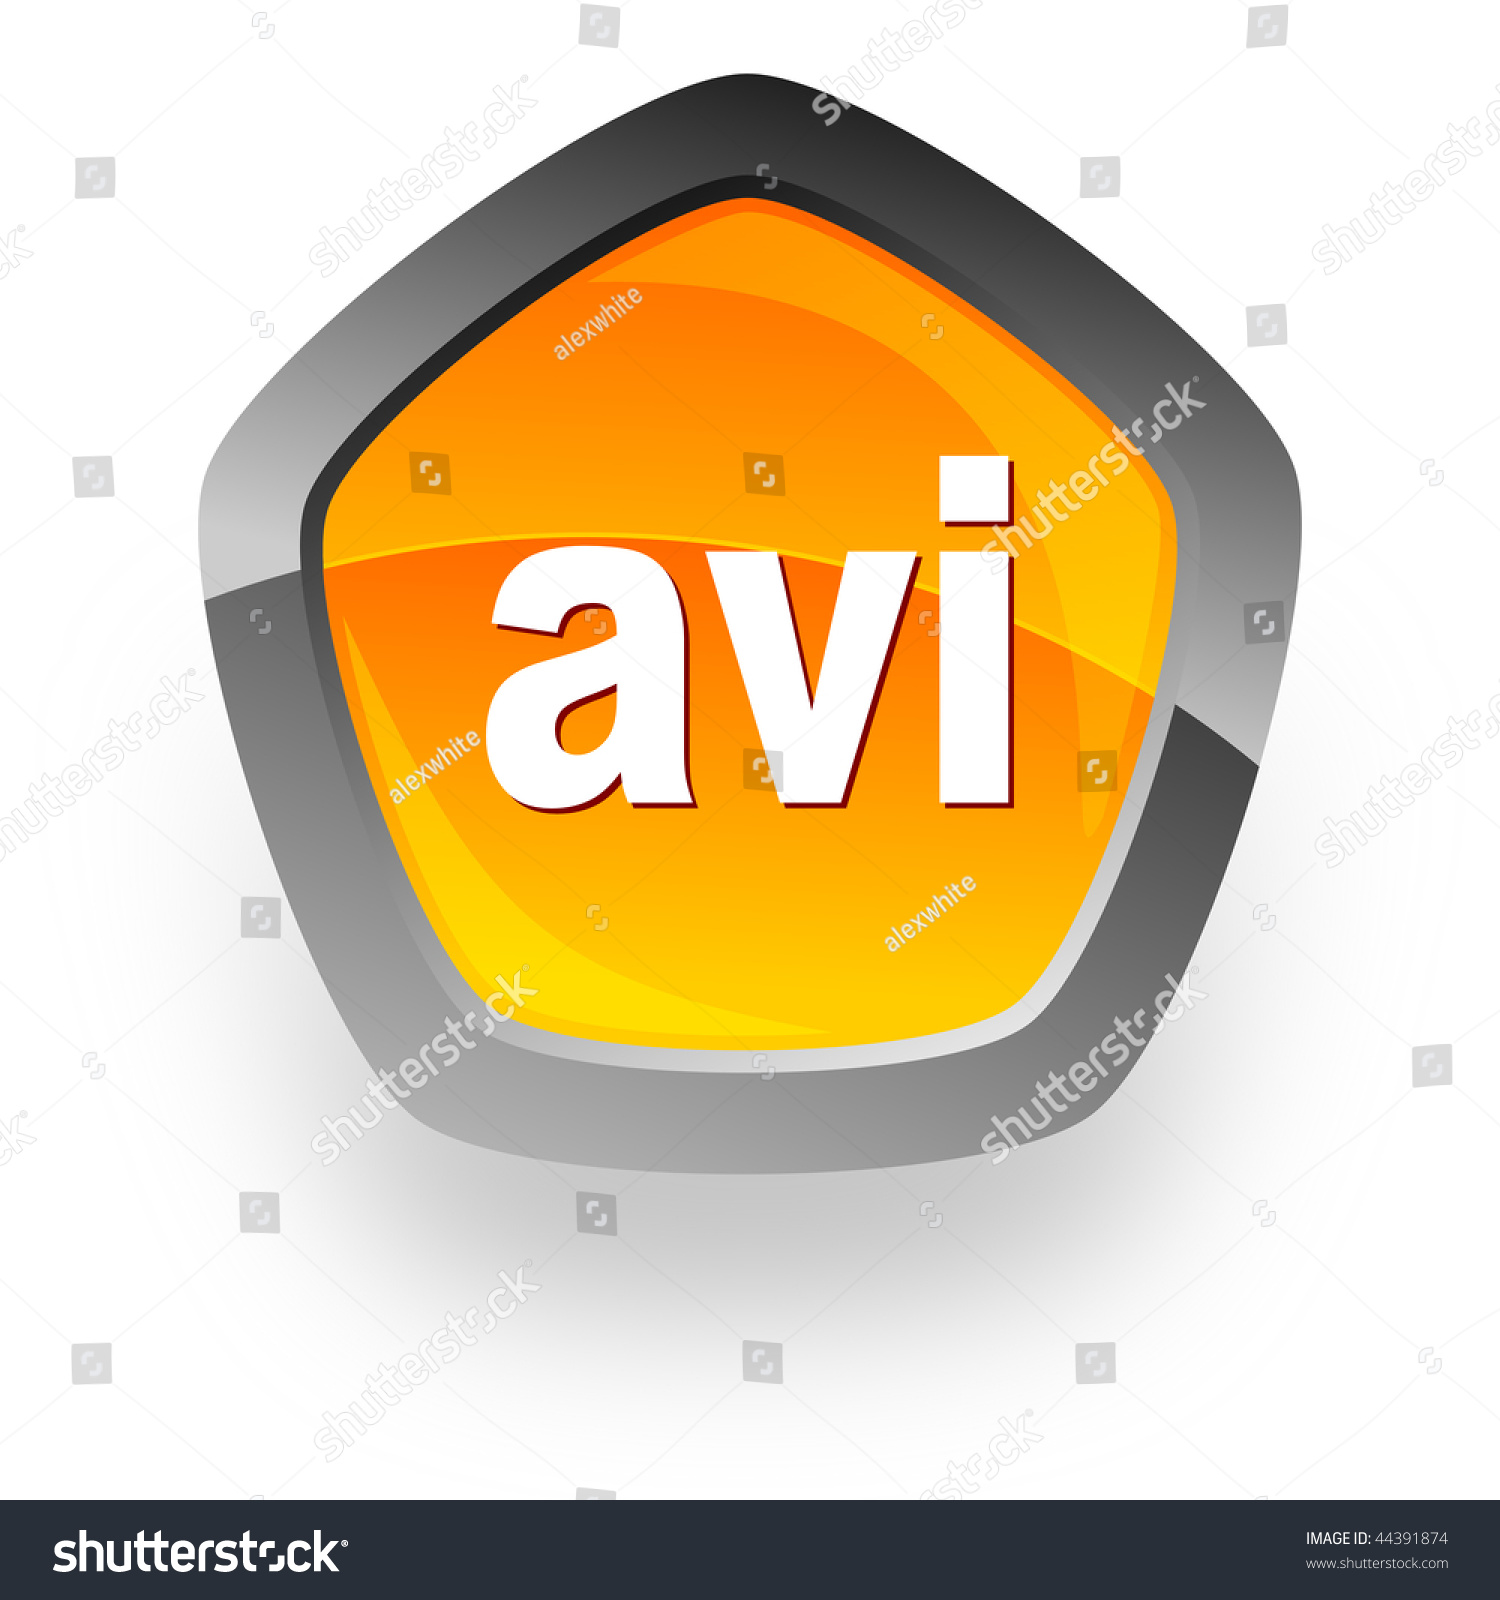 AVI file Archives - Search Engine Watch